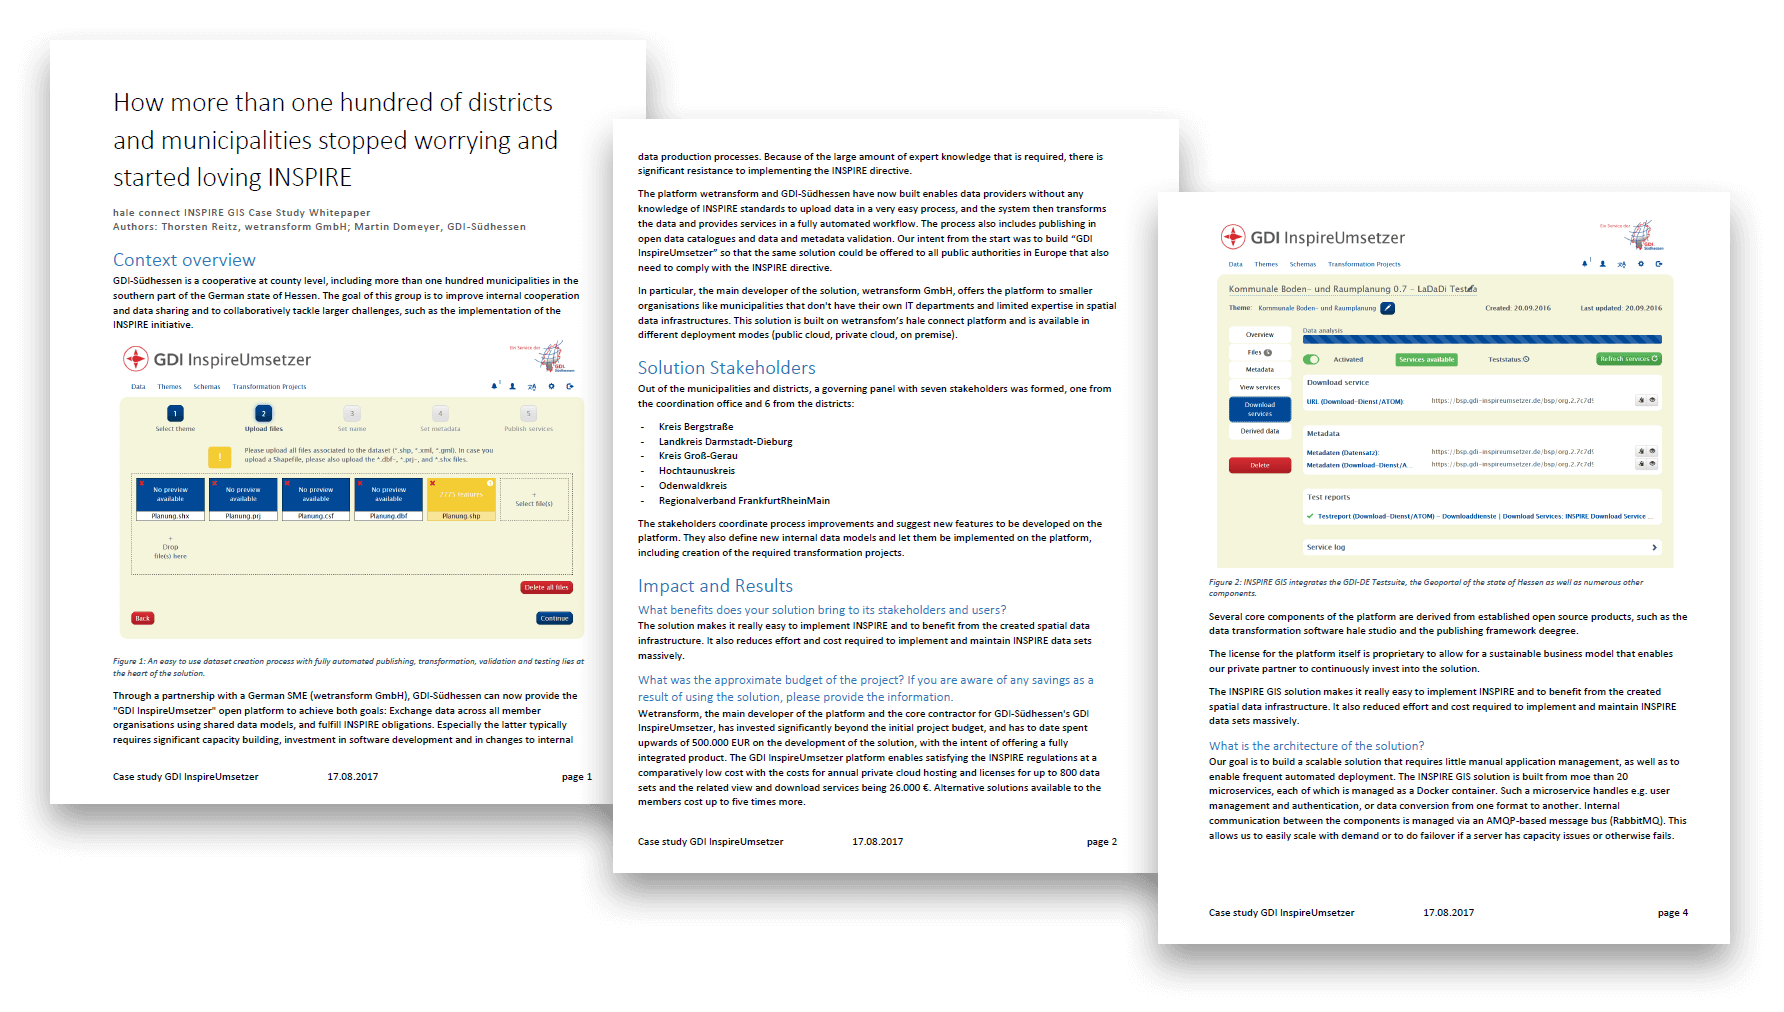 A Preview of the whitepaper